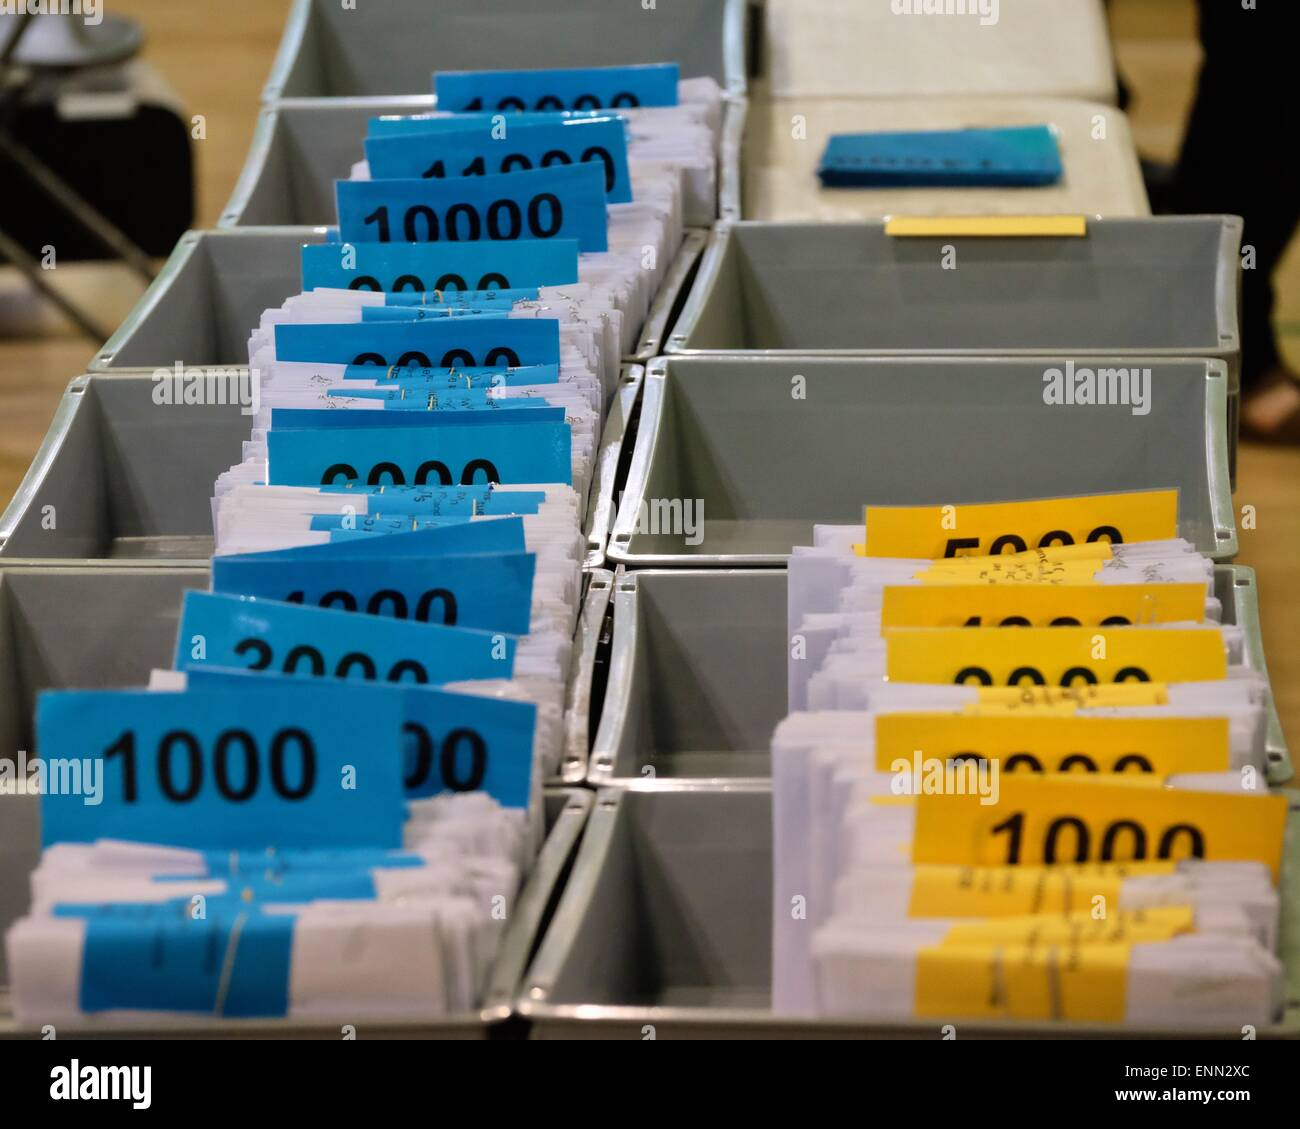 Dorchester, Dorset, UK. 8 May 2015. Counted ballot papers stack up in the Conservatives favour during the West Dorset - Stock Image